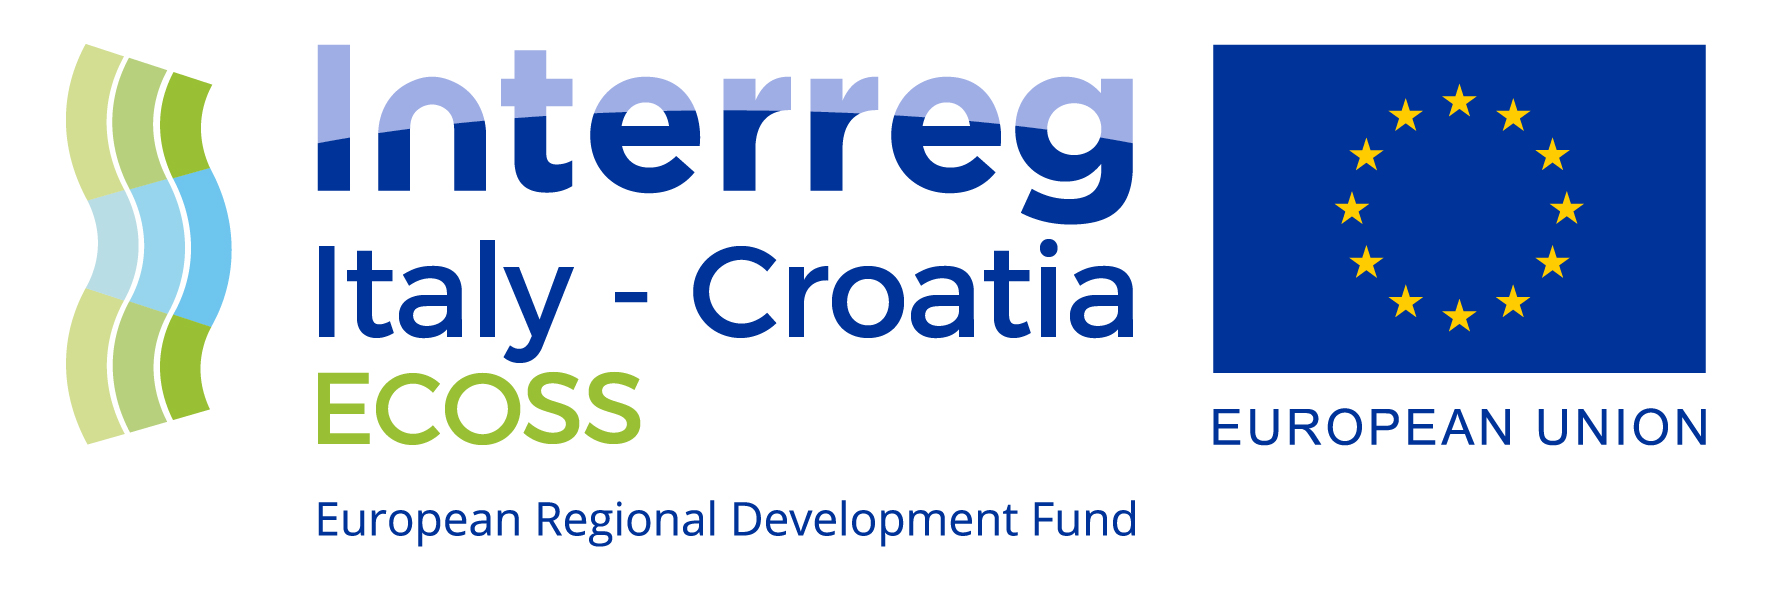 MEETING OF THE ITALY-CROATIA ECOSS PROJECT